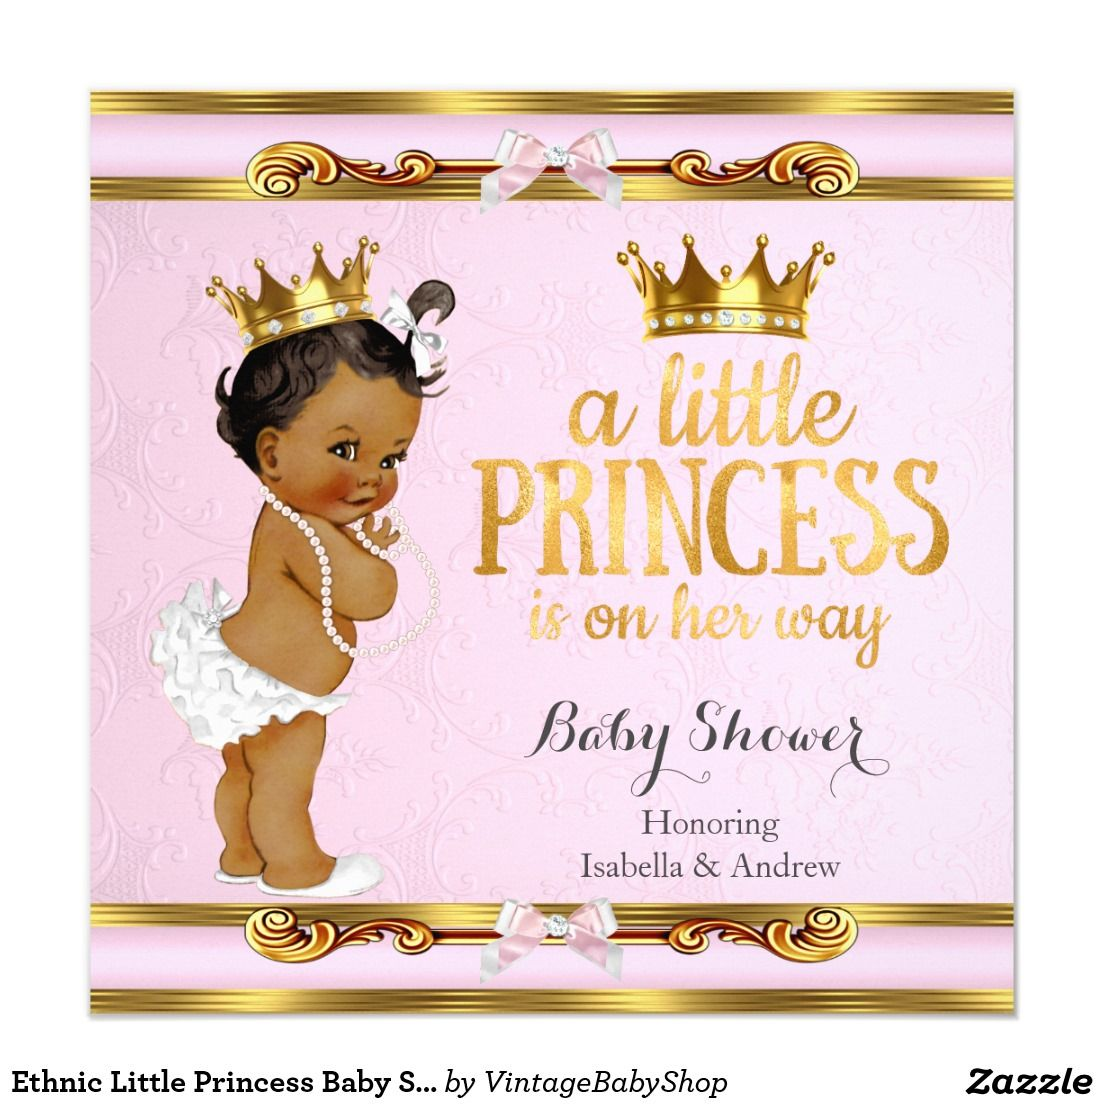 ethnic little princess baby shower pink gold card   baby shower, Baby shower invitations